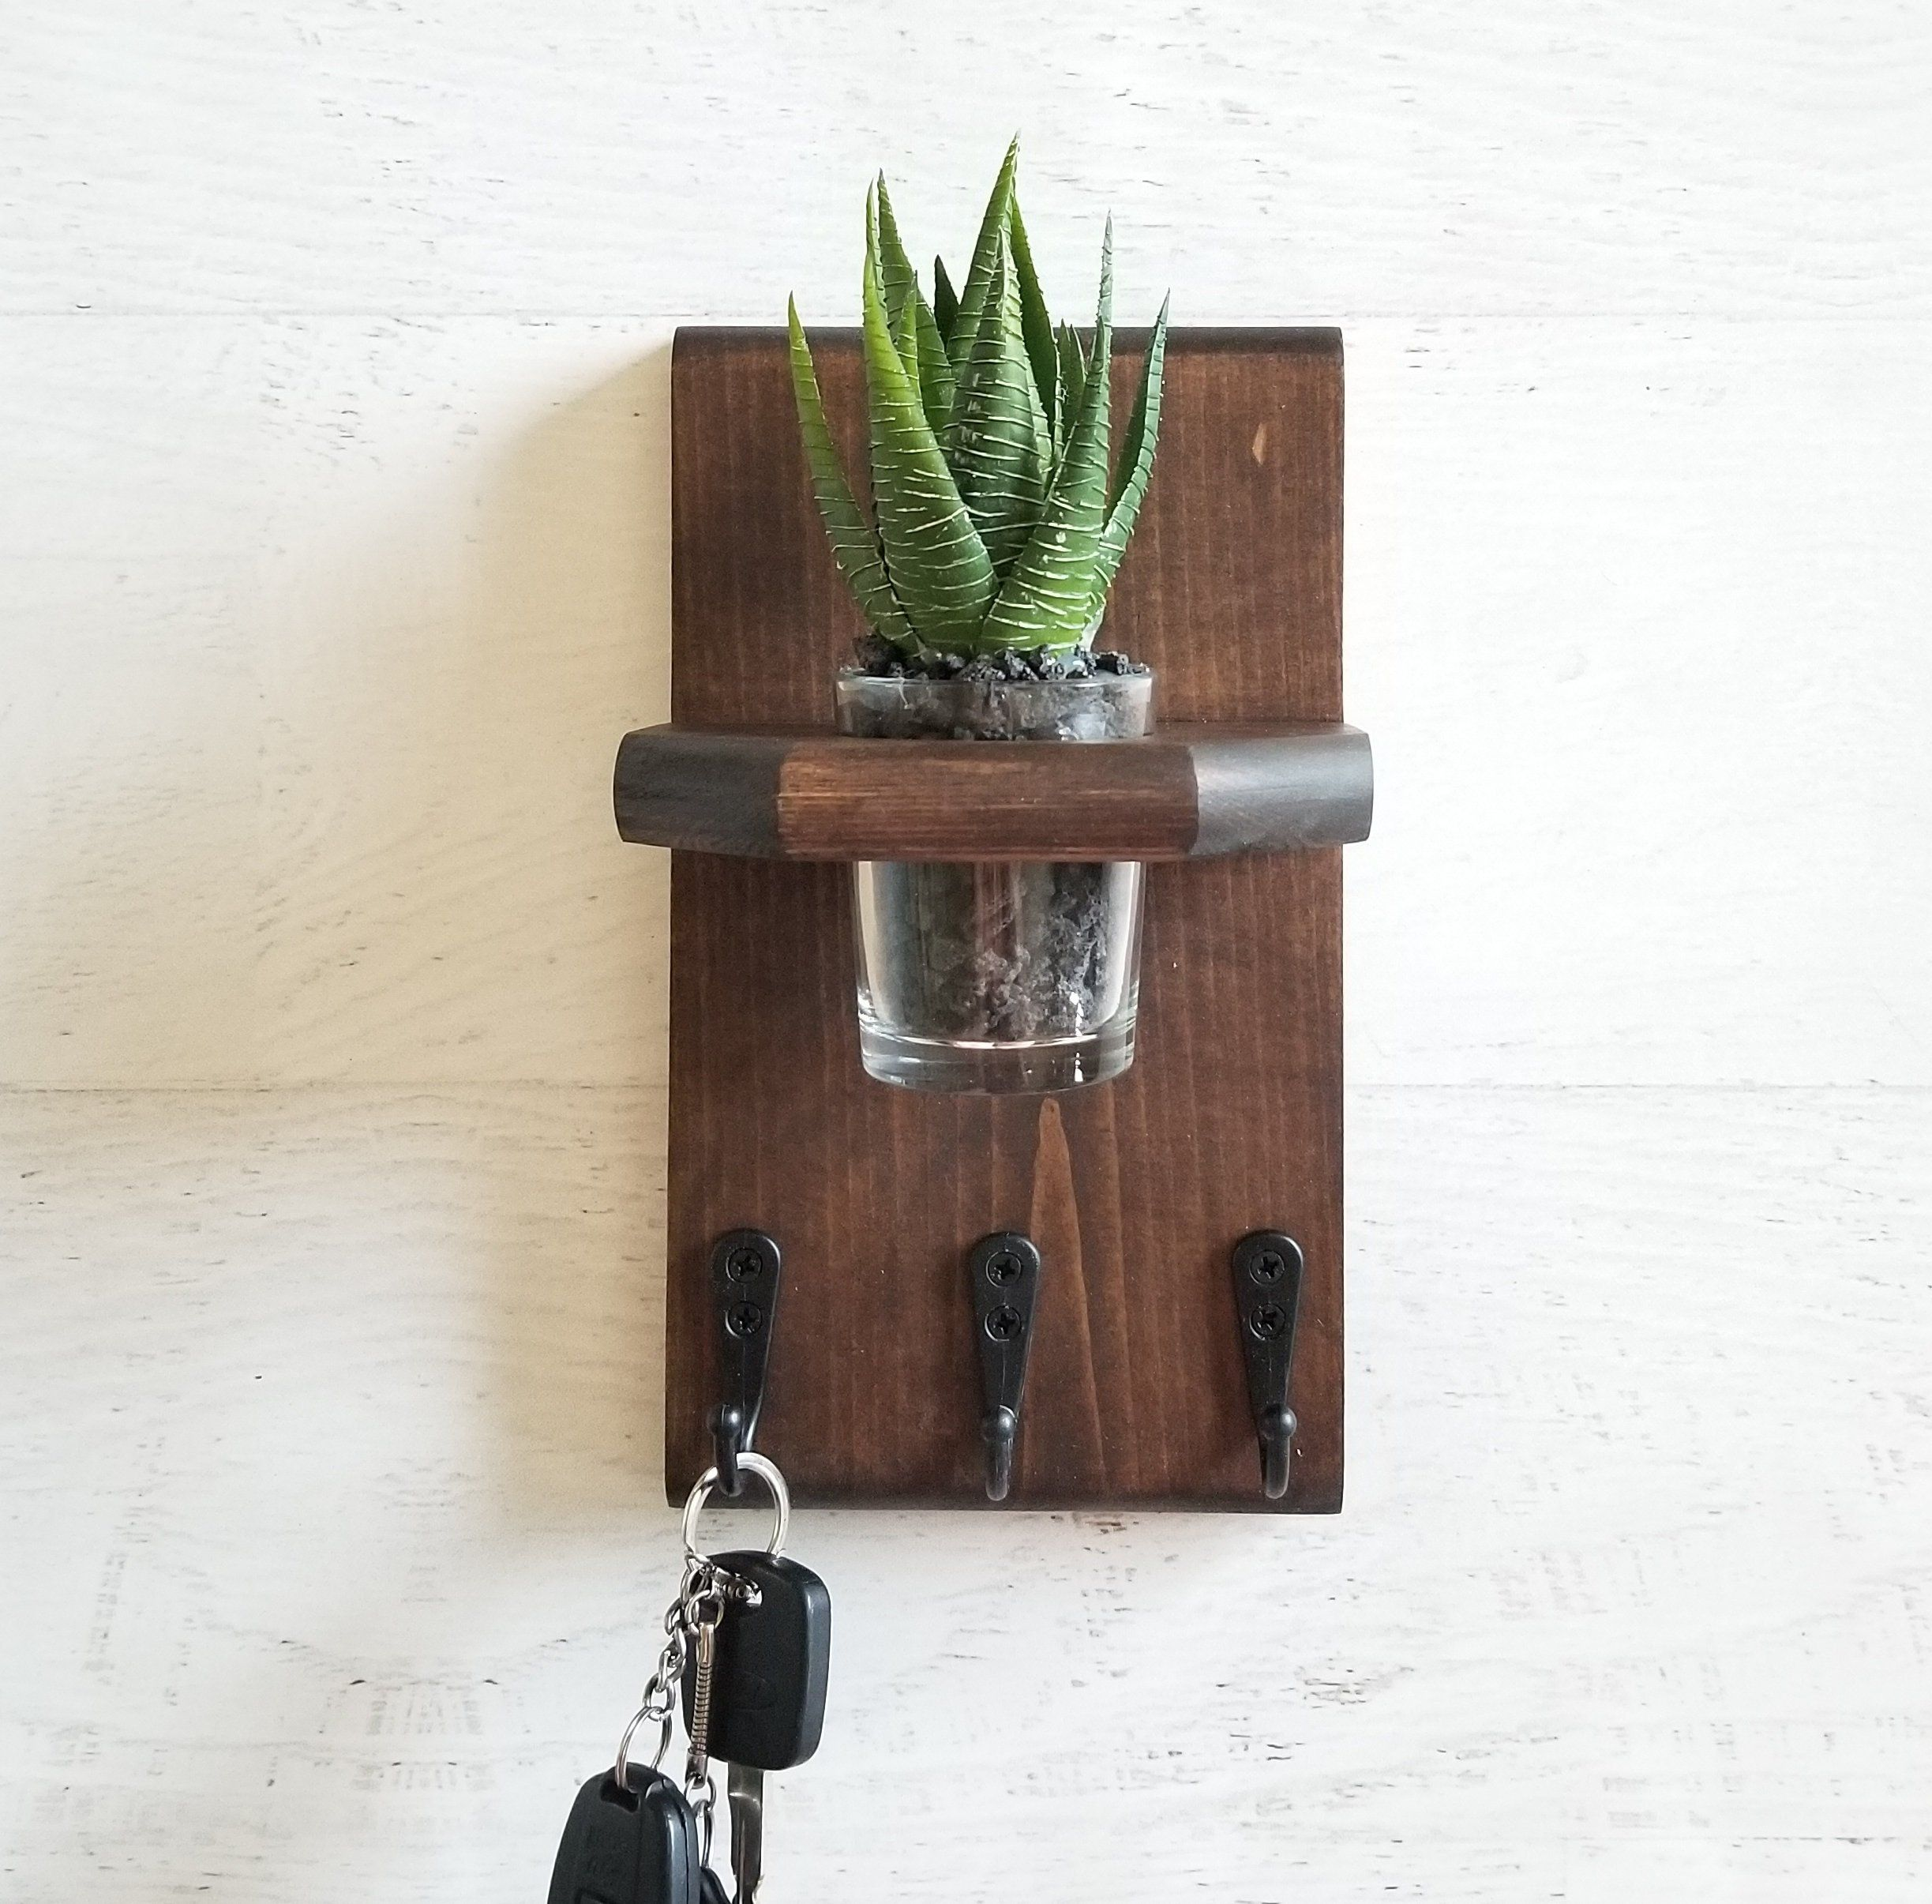 Key Holder For Wall With Bud Vase Entryway Wall Hooks Wall Etsy Wall Key Holder Key Holder Diy Key Holder